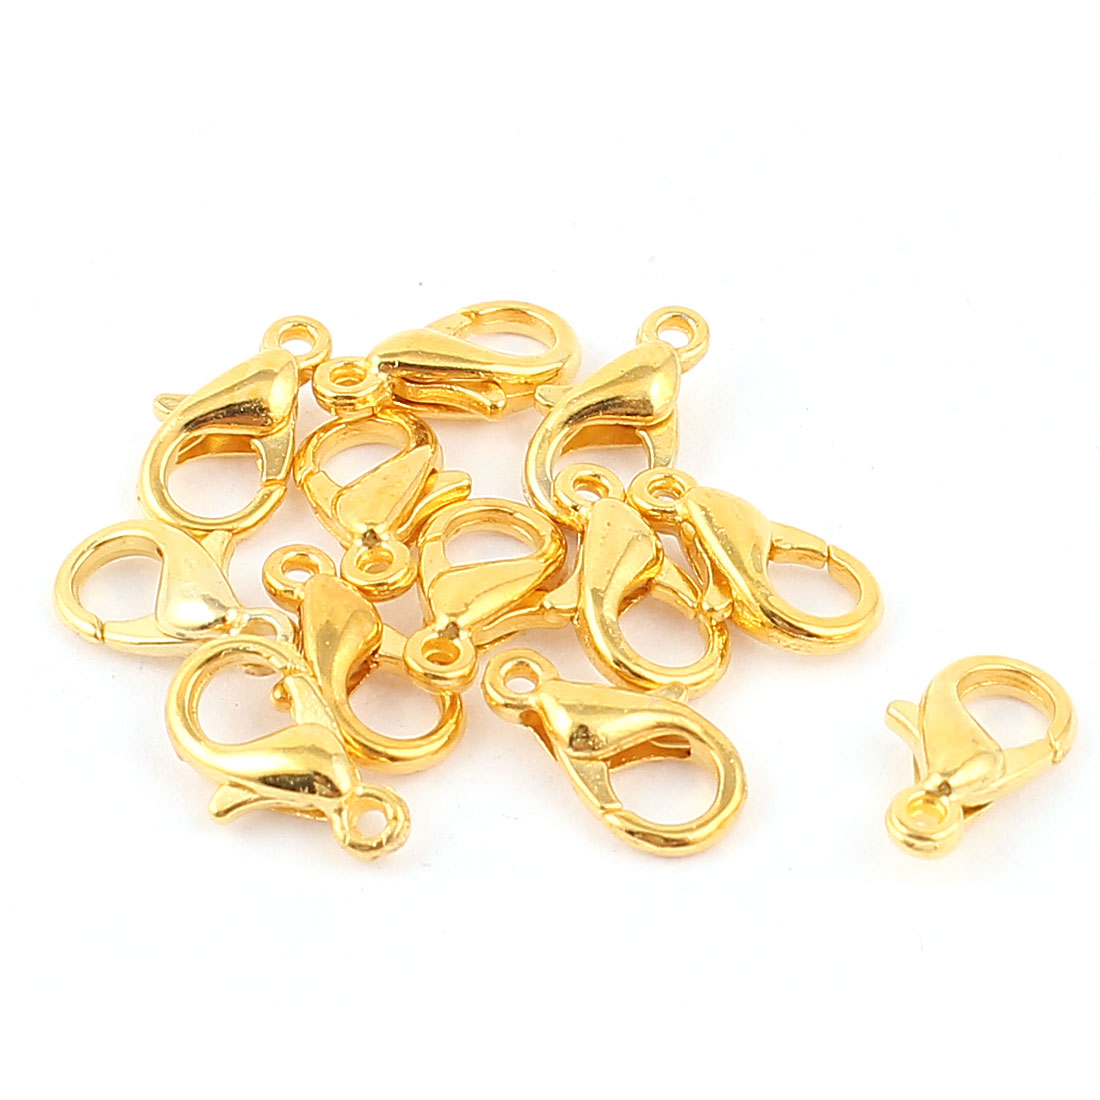 Jewelry Fastener Hooks Findings Lobster Clasps Clips Claw Gold Tone 12pcs